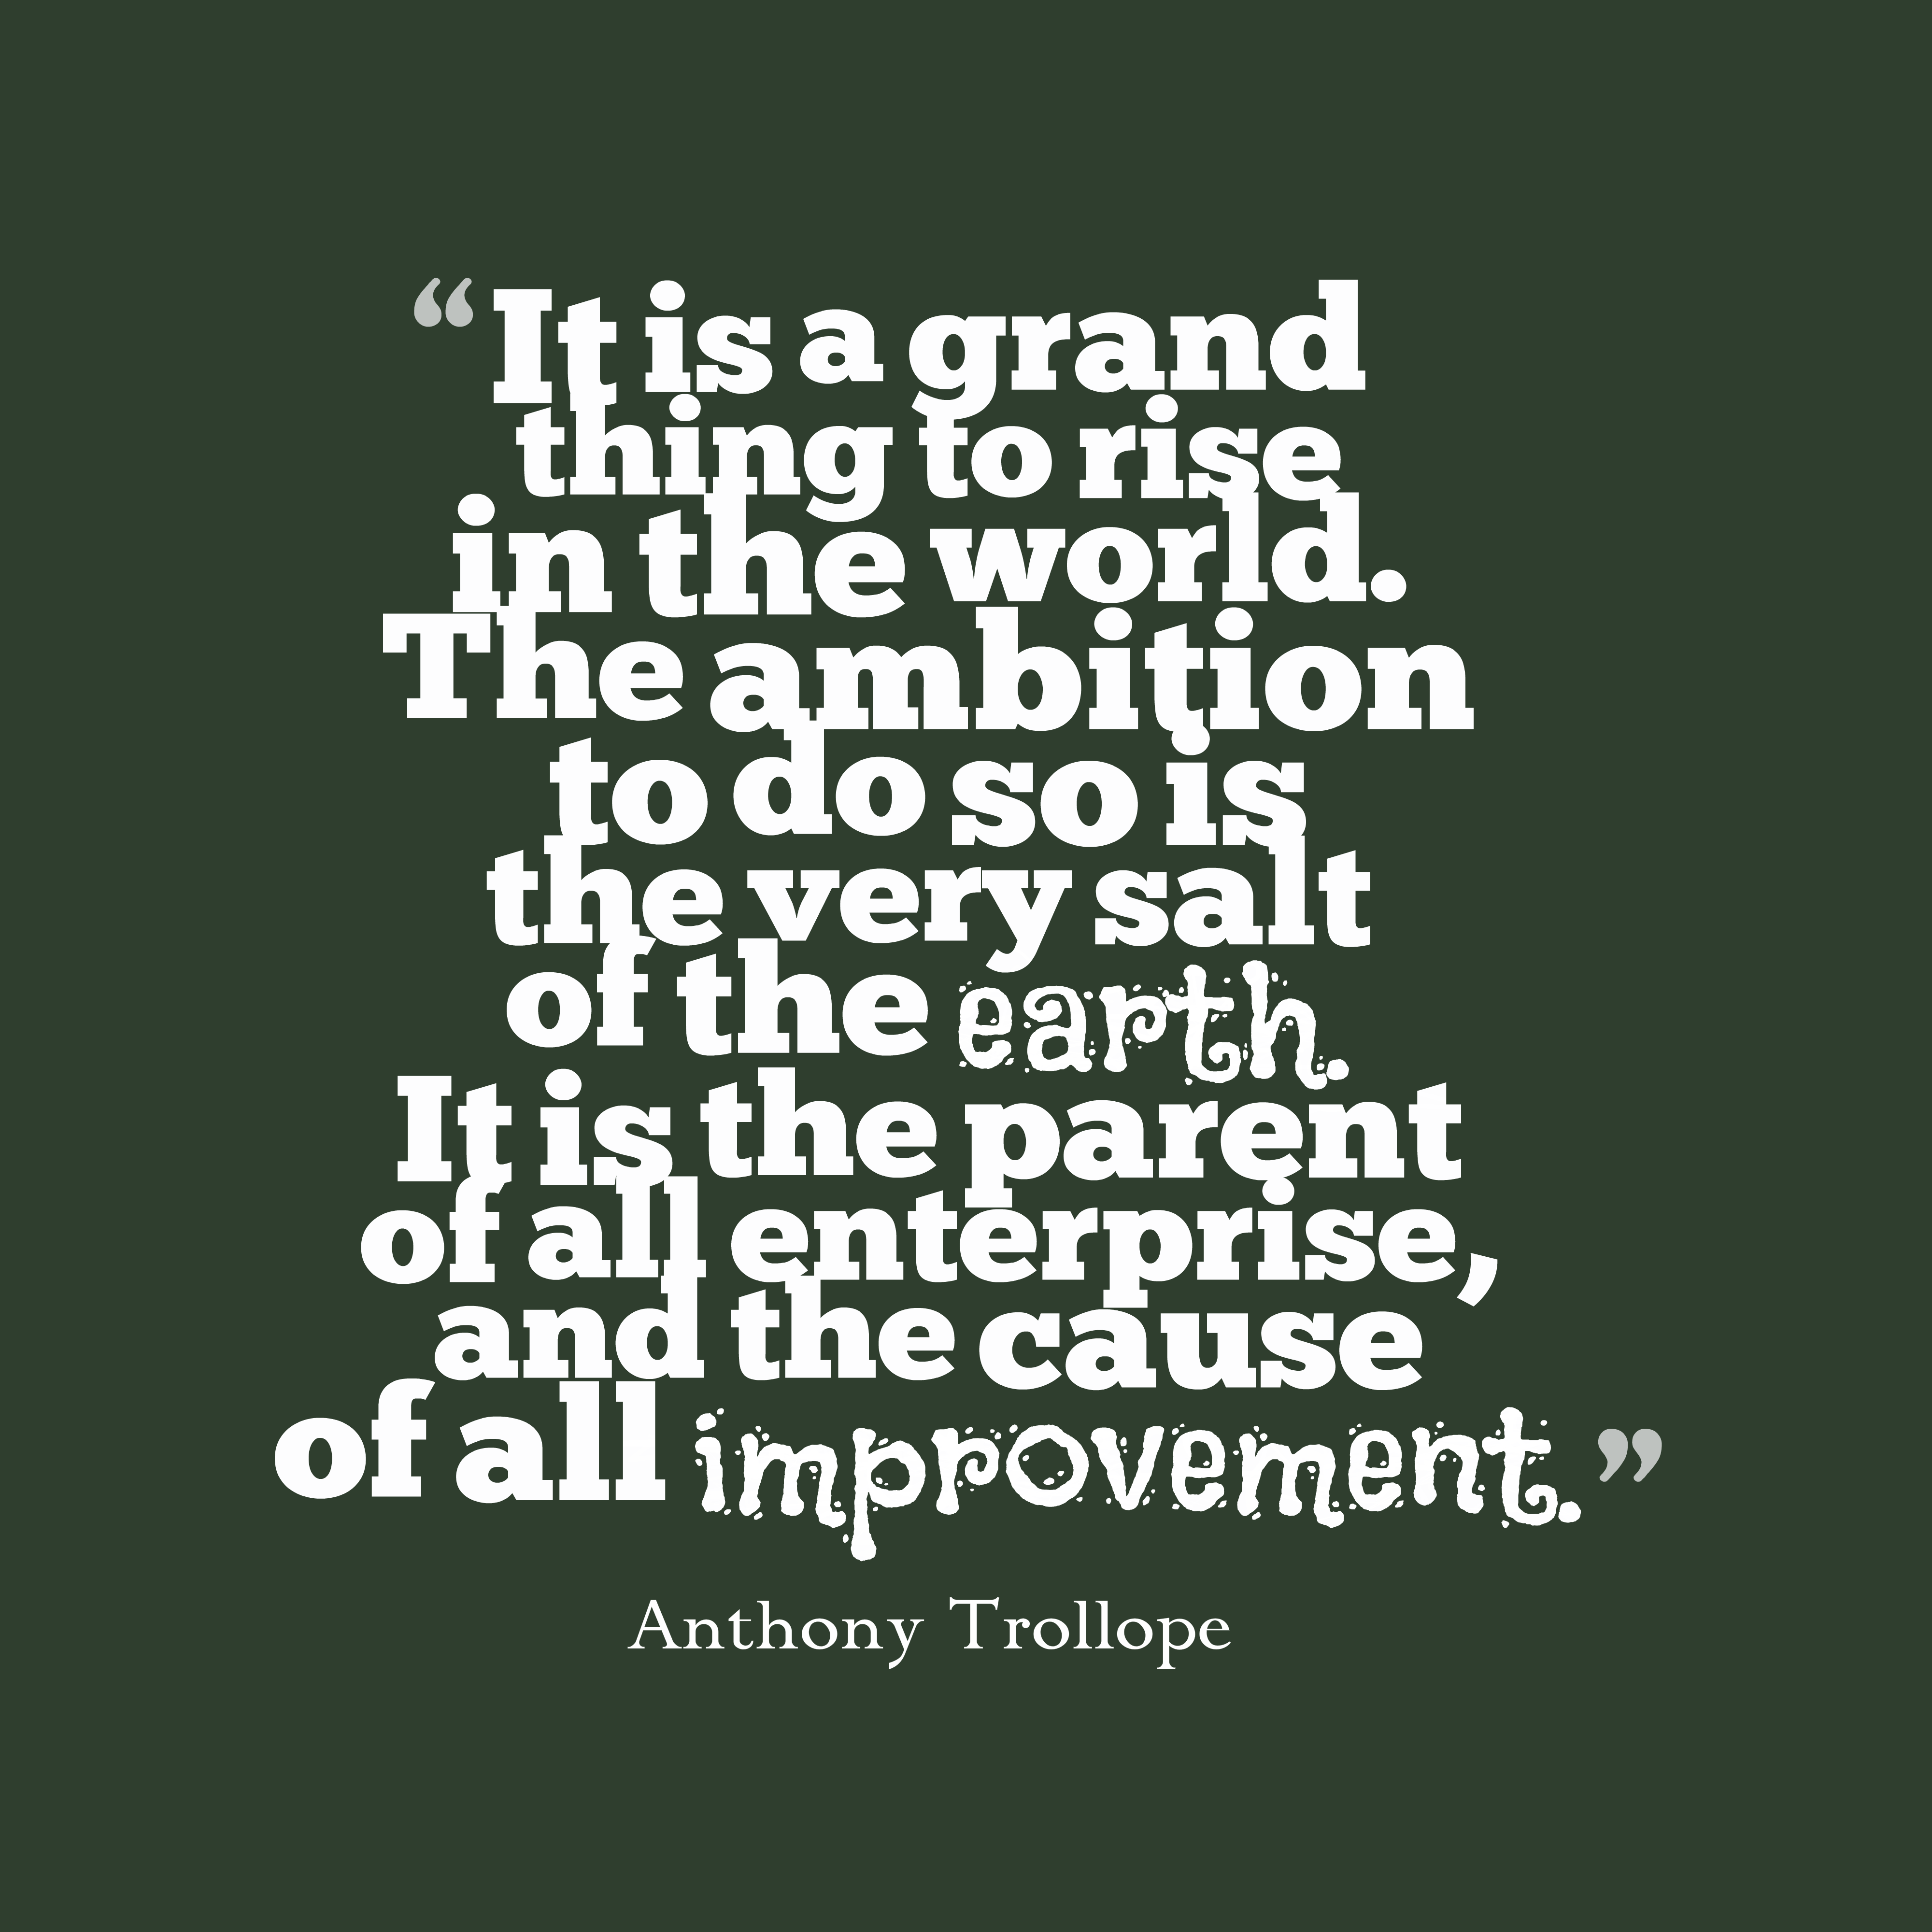 Quotes image of It is a grand thing to rise in the world. The ambition to do so is the very salt of the earth. It is the parent of all enterprise, and the cause of all improvement.